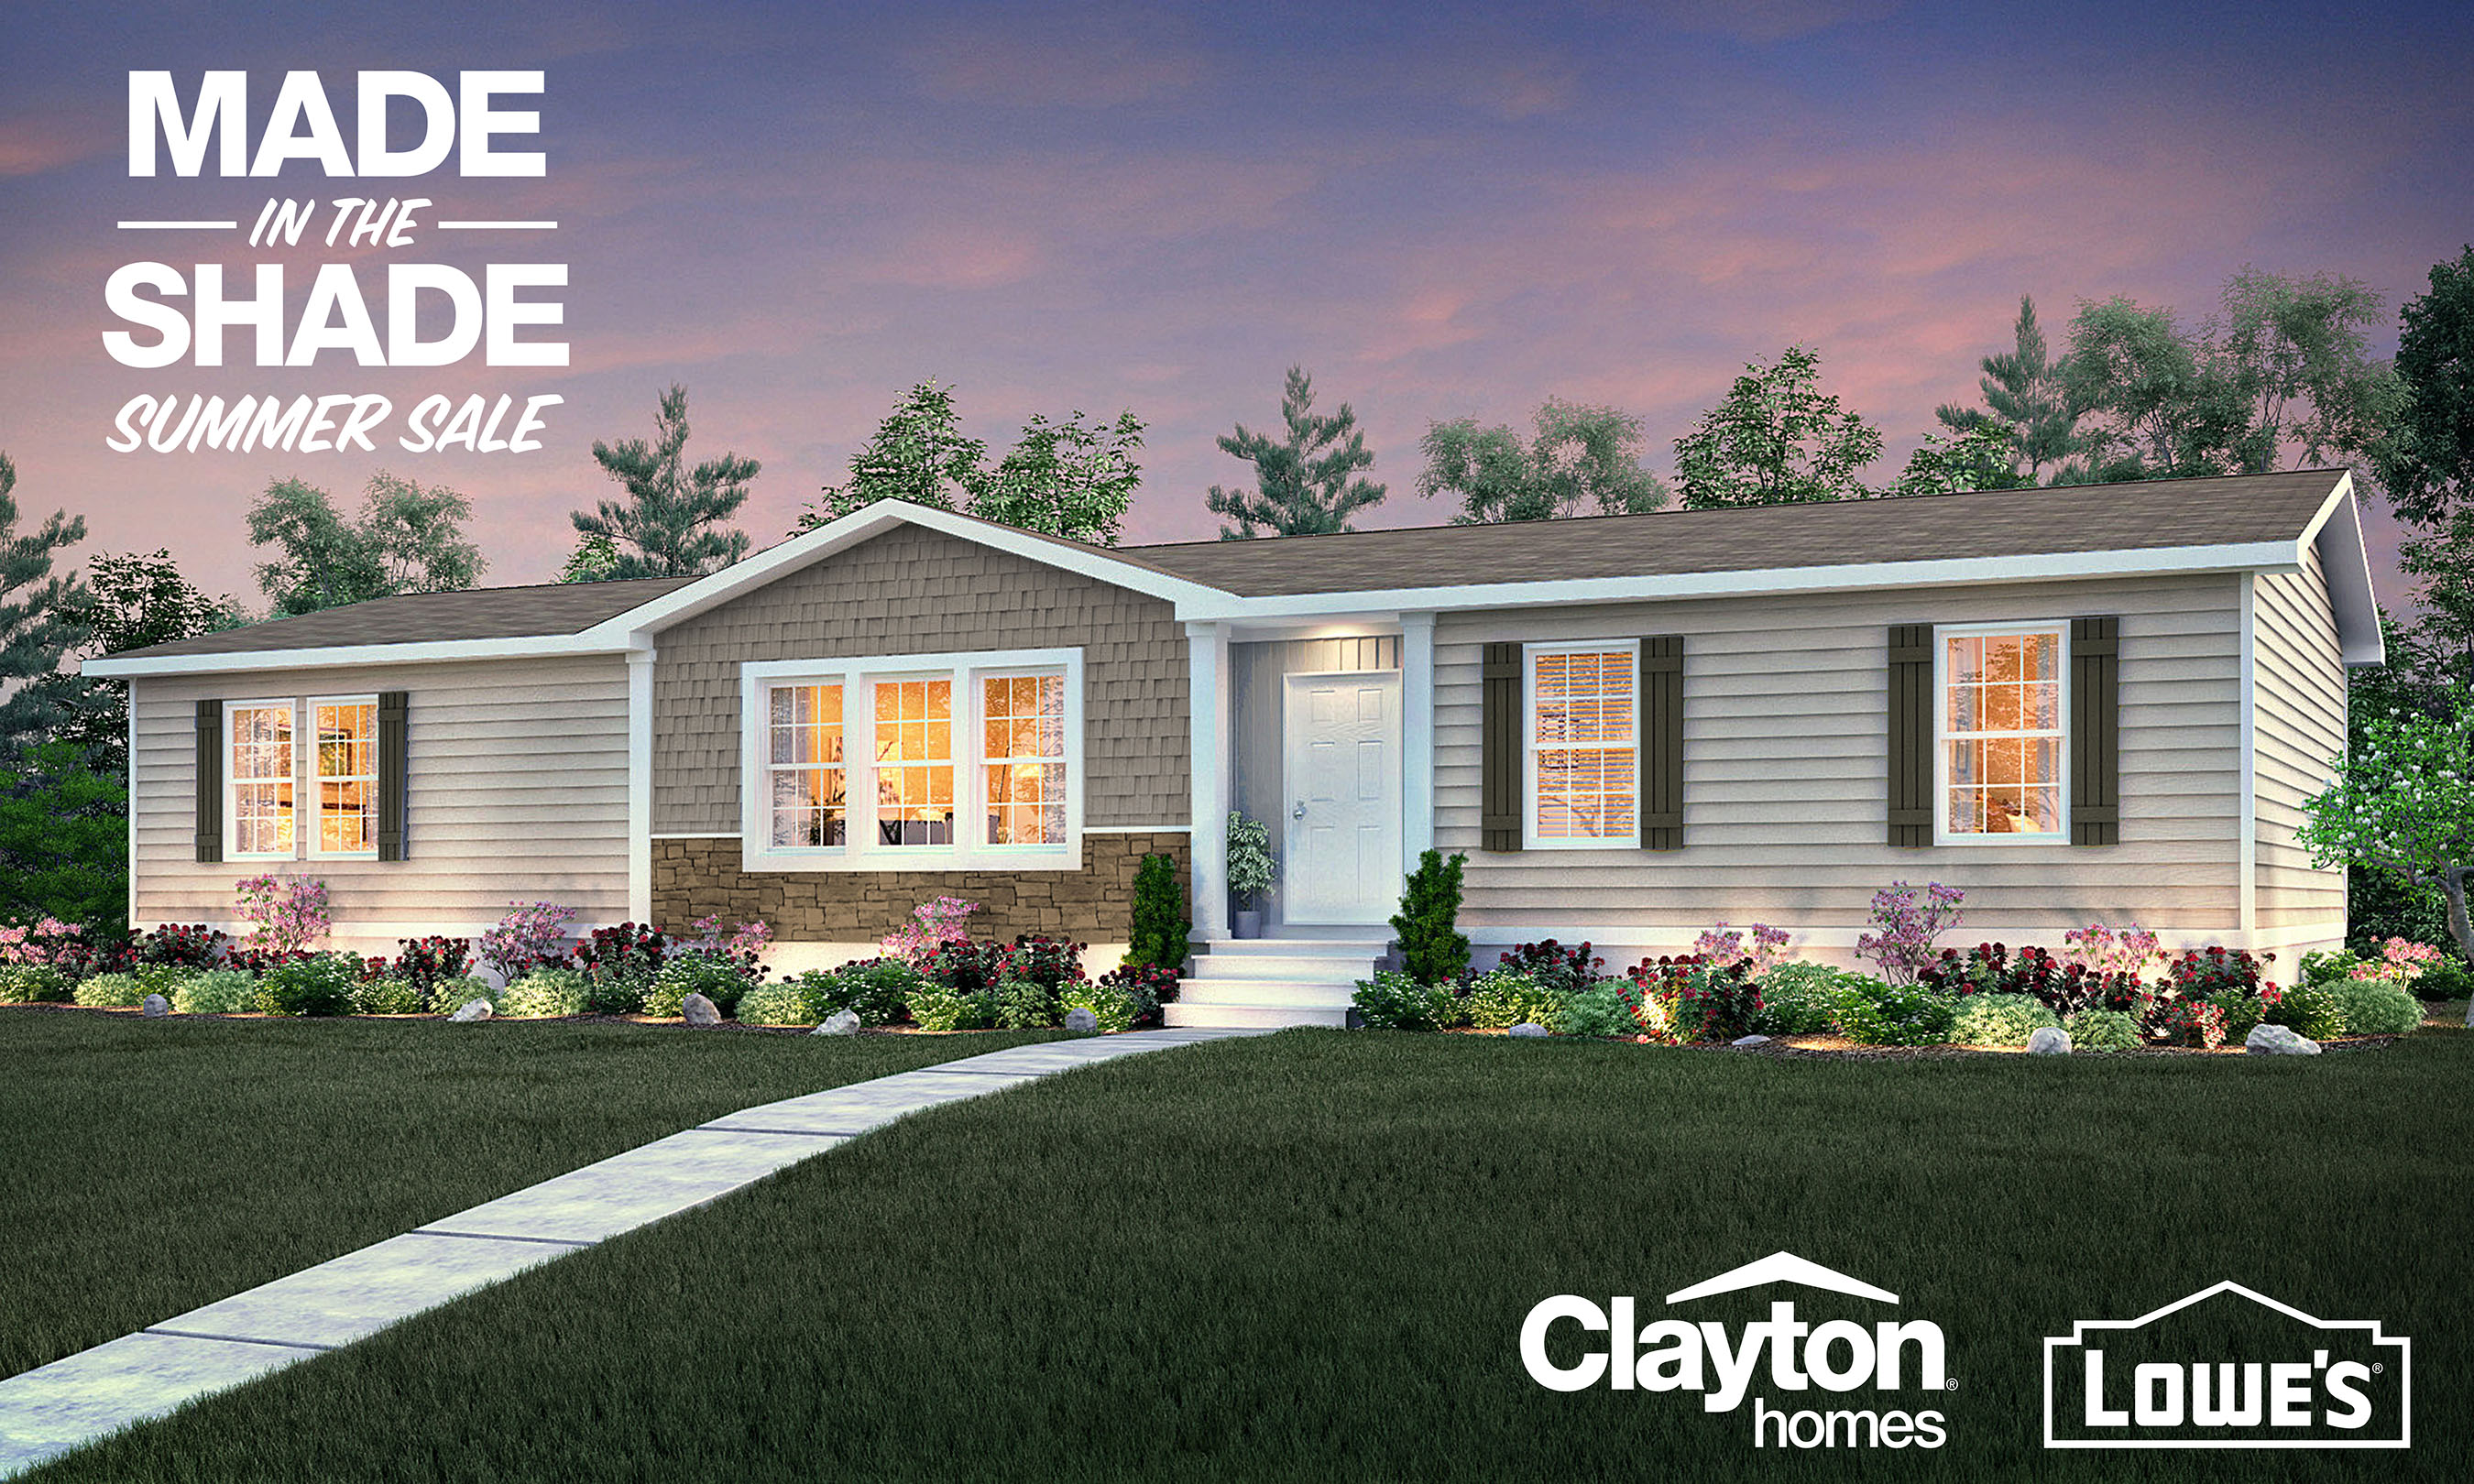 Clayton is offering its latest, limited-time sales promotion to help homebuyers get the backyard of their dreams.